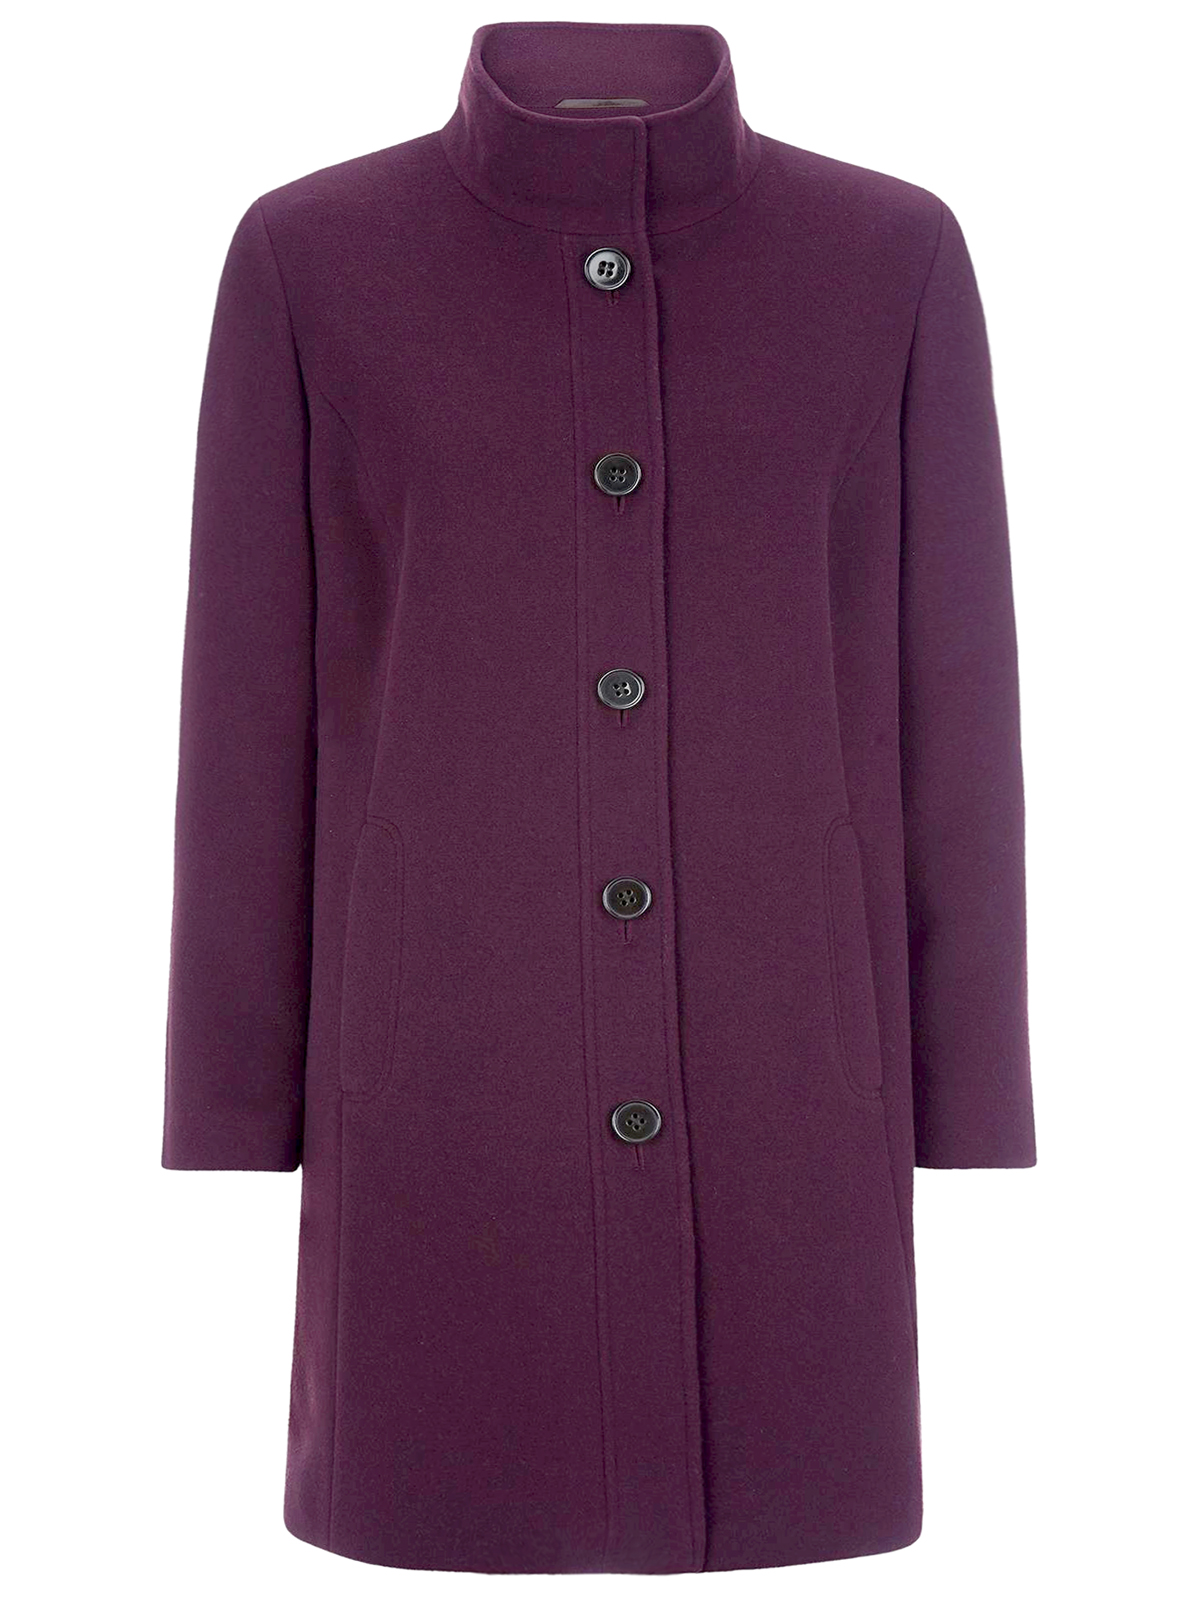 Free shipping and returns on Women's Purple Coats, Jackets & Blazers at hereyfiletk.gq